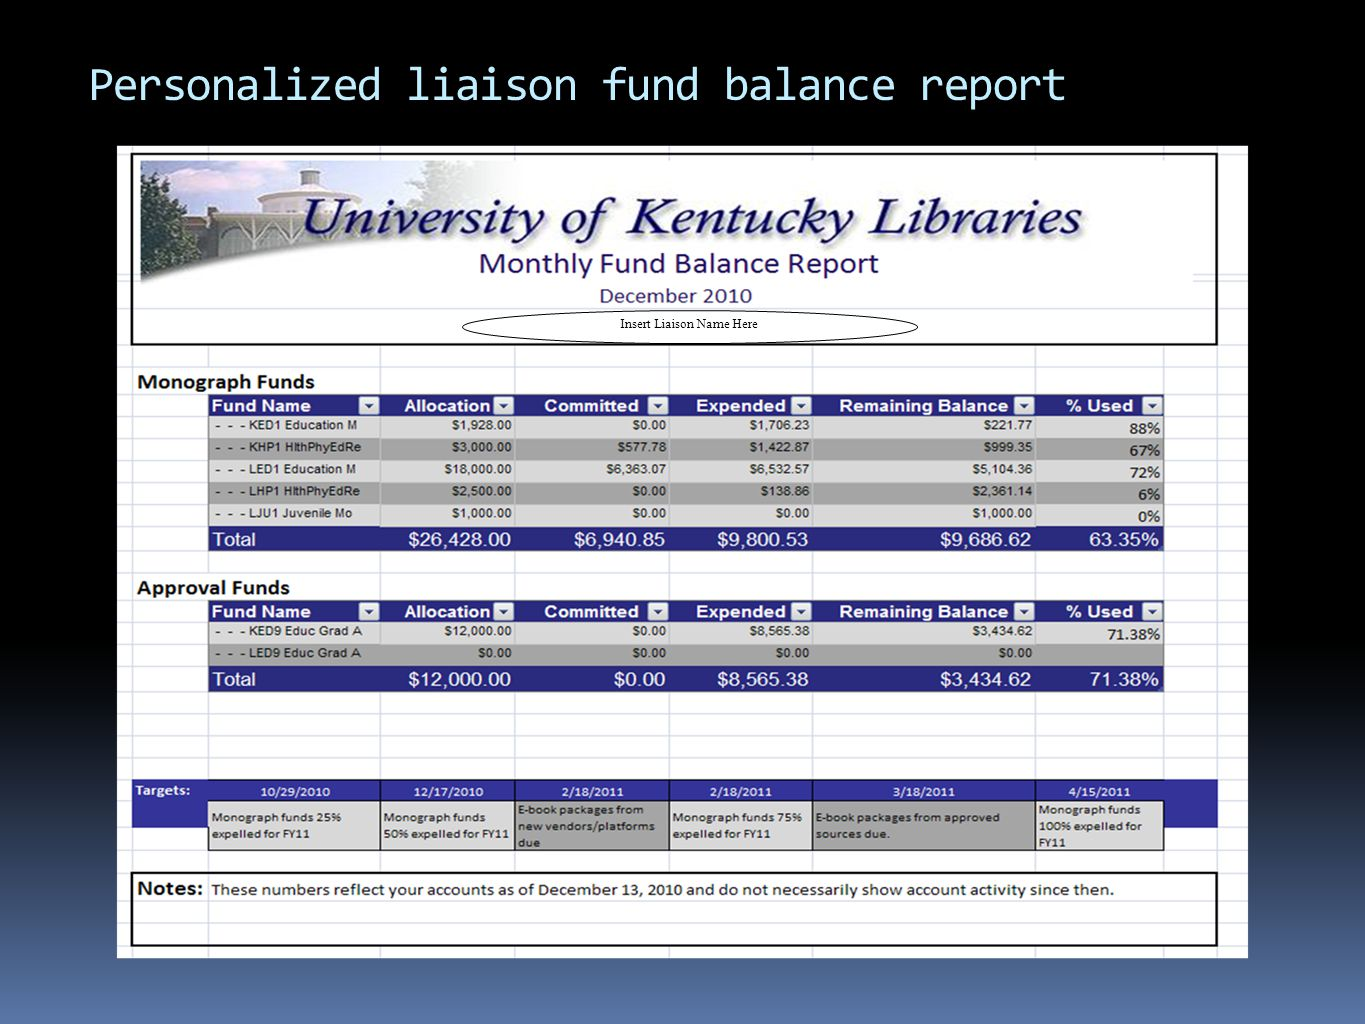 Insert Liaison Name Here Personalized liaison fund balance report